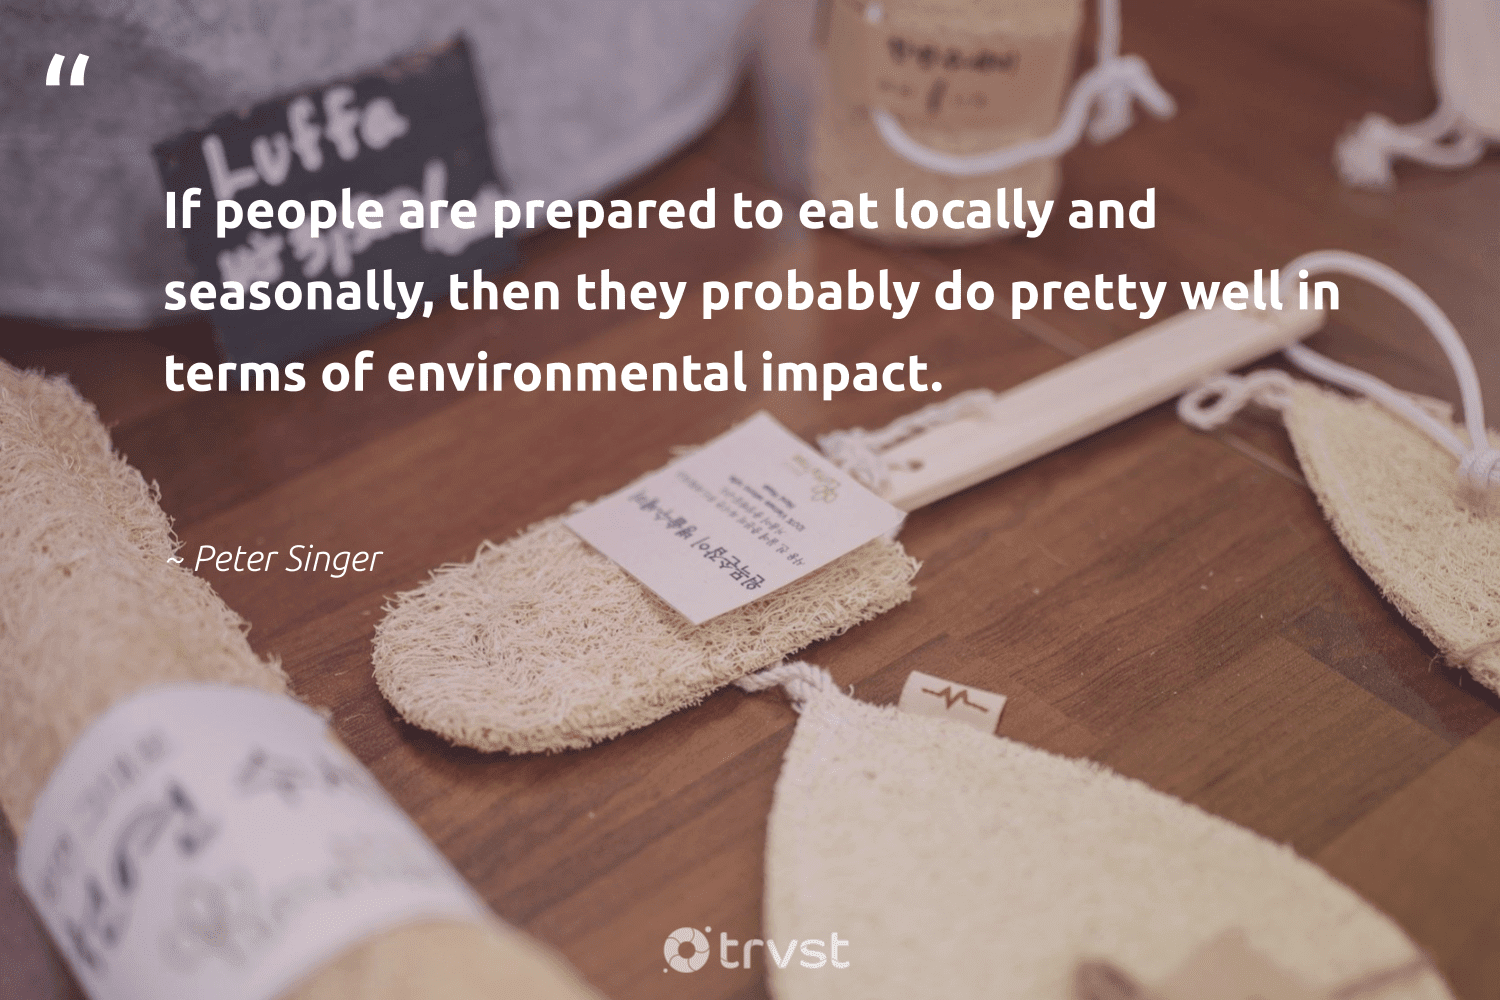 """""""If people are prepared to eat locally and seasonally, then they probably do pretty well in terms of environmental impact.""""  - Peter Singer #trvst #quotes #impact #environmental #sustainable #dosomething #greenliving #dotherightthing #gogreen #thinkgreen #sustainability #collectiveaction"""